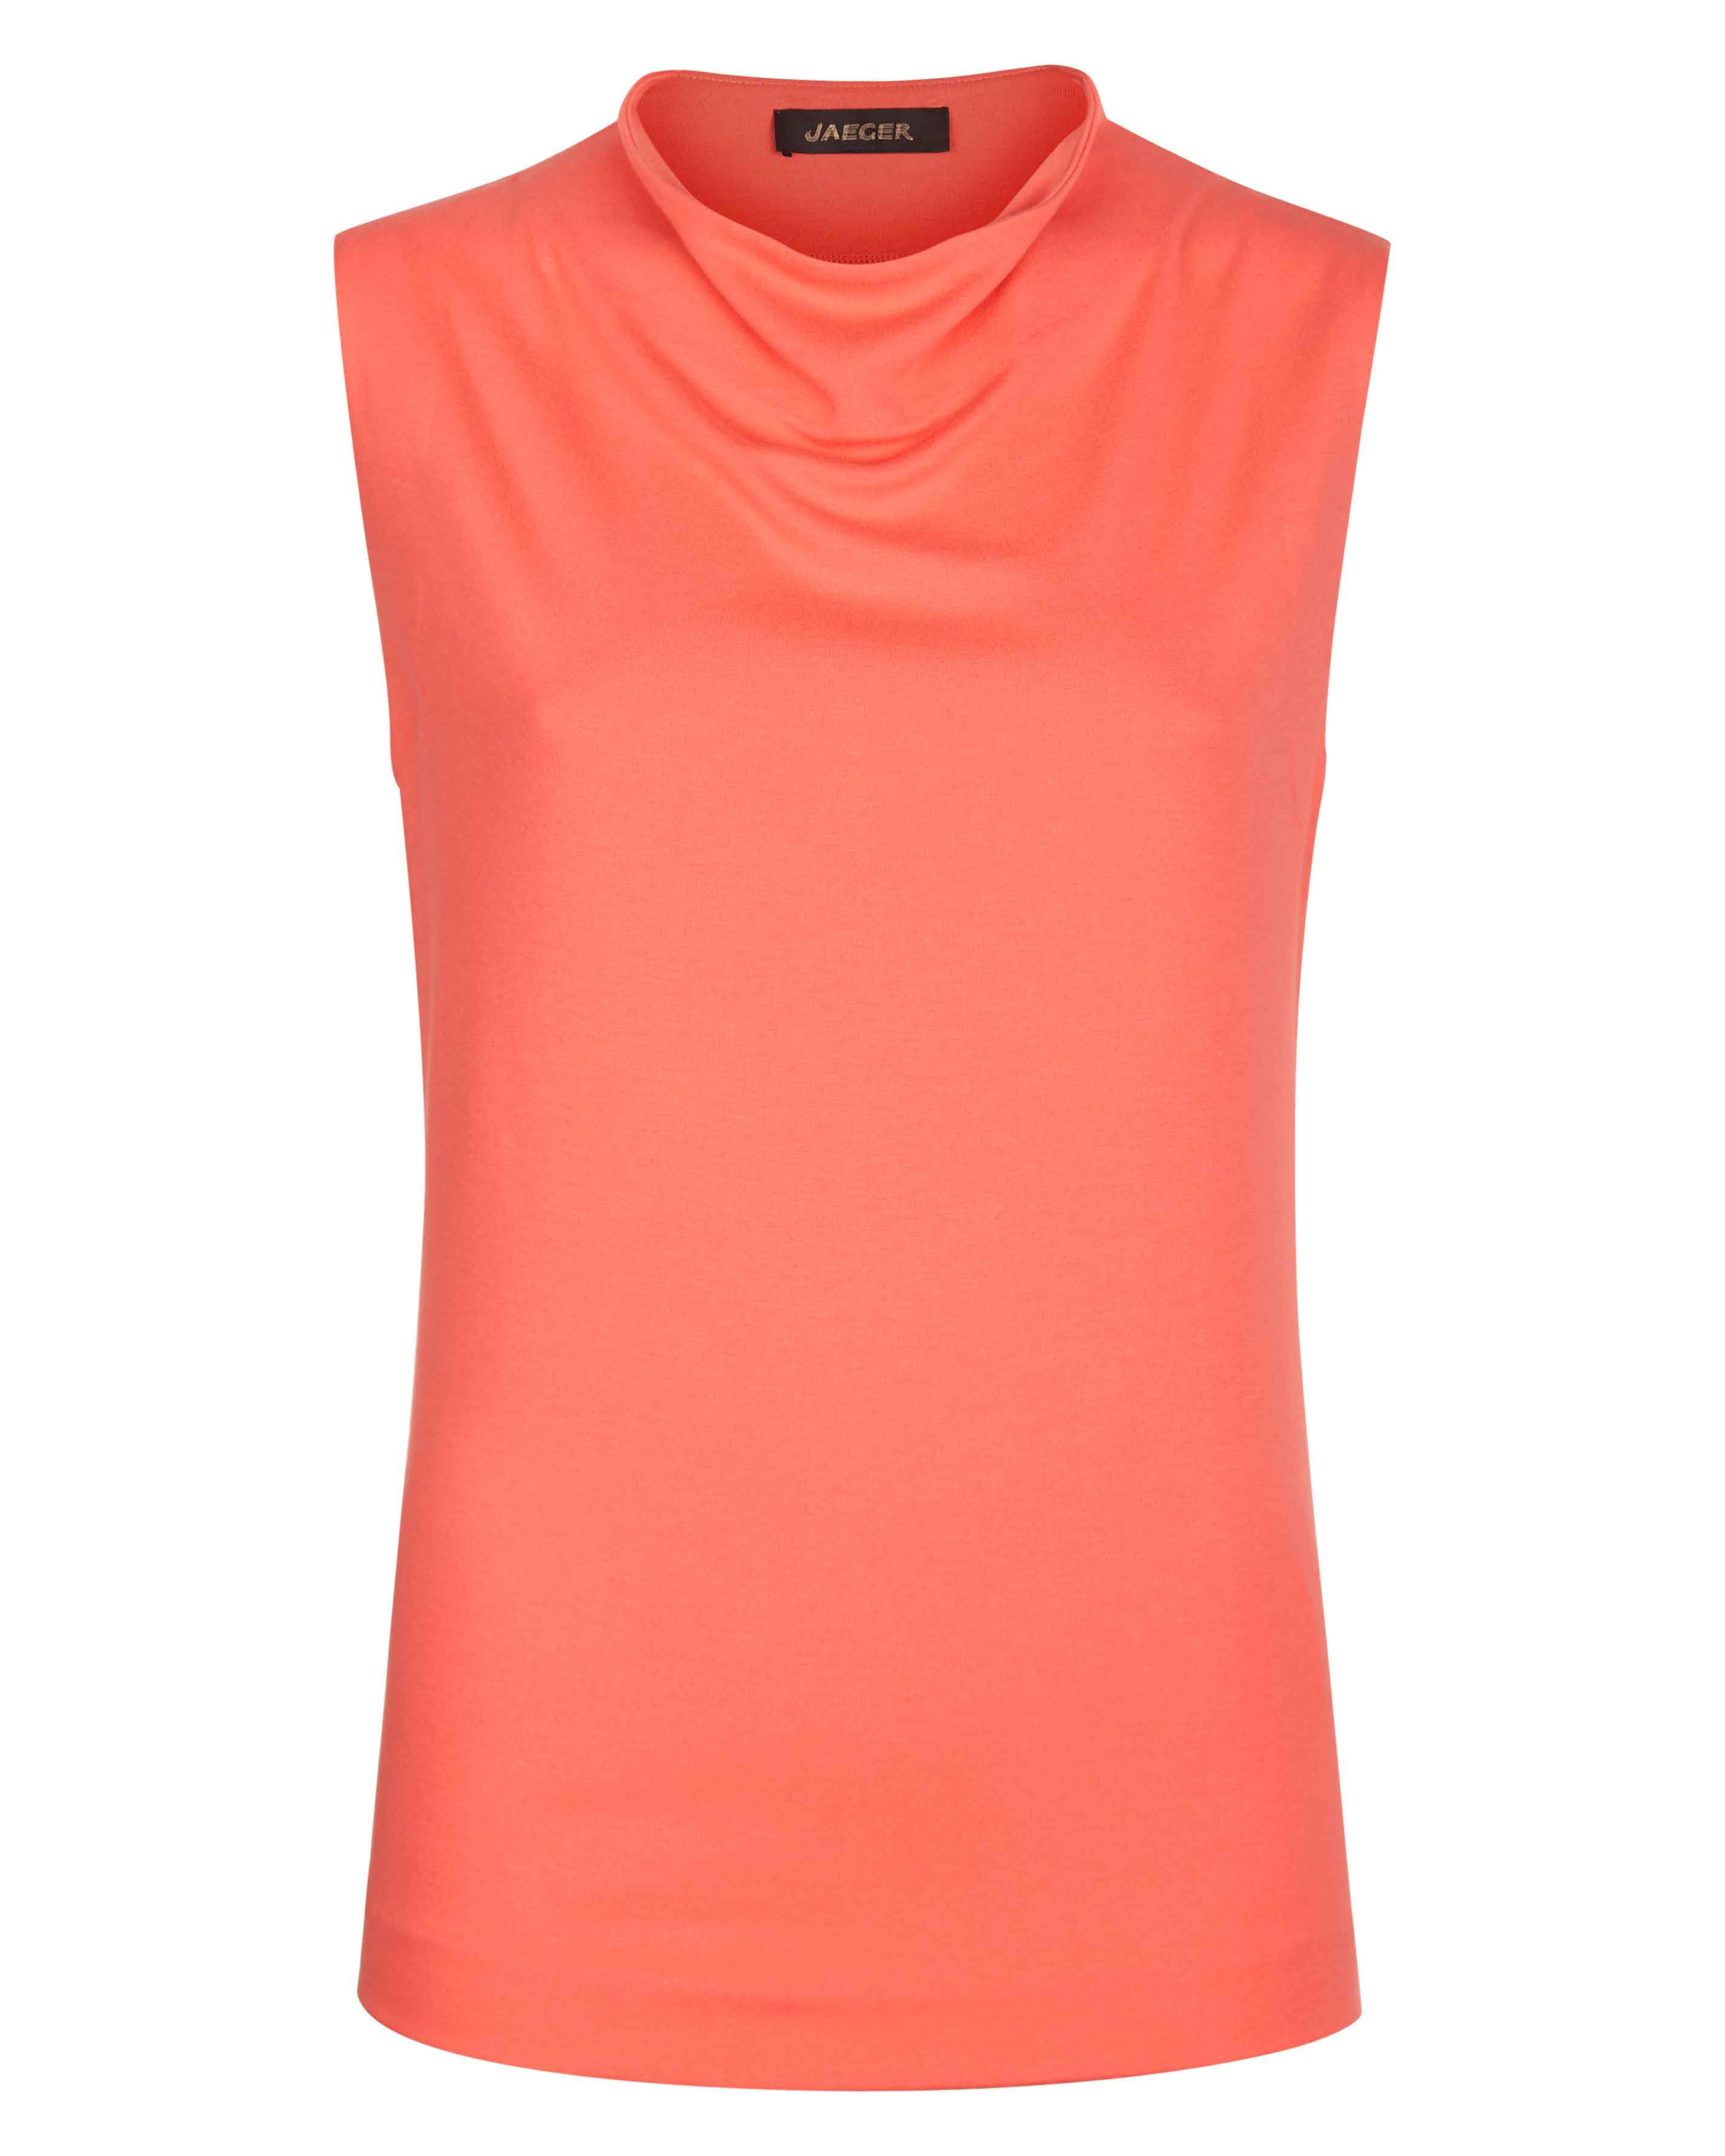 Jaeger Jersey Drape Neck Top, Peach